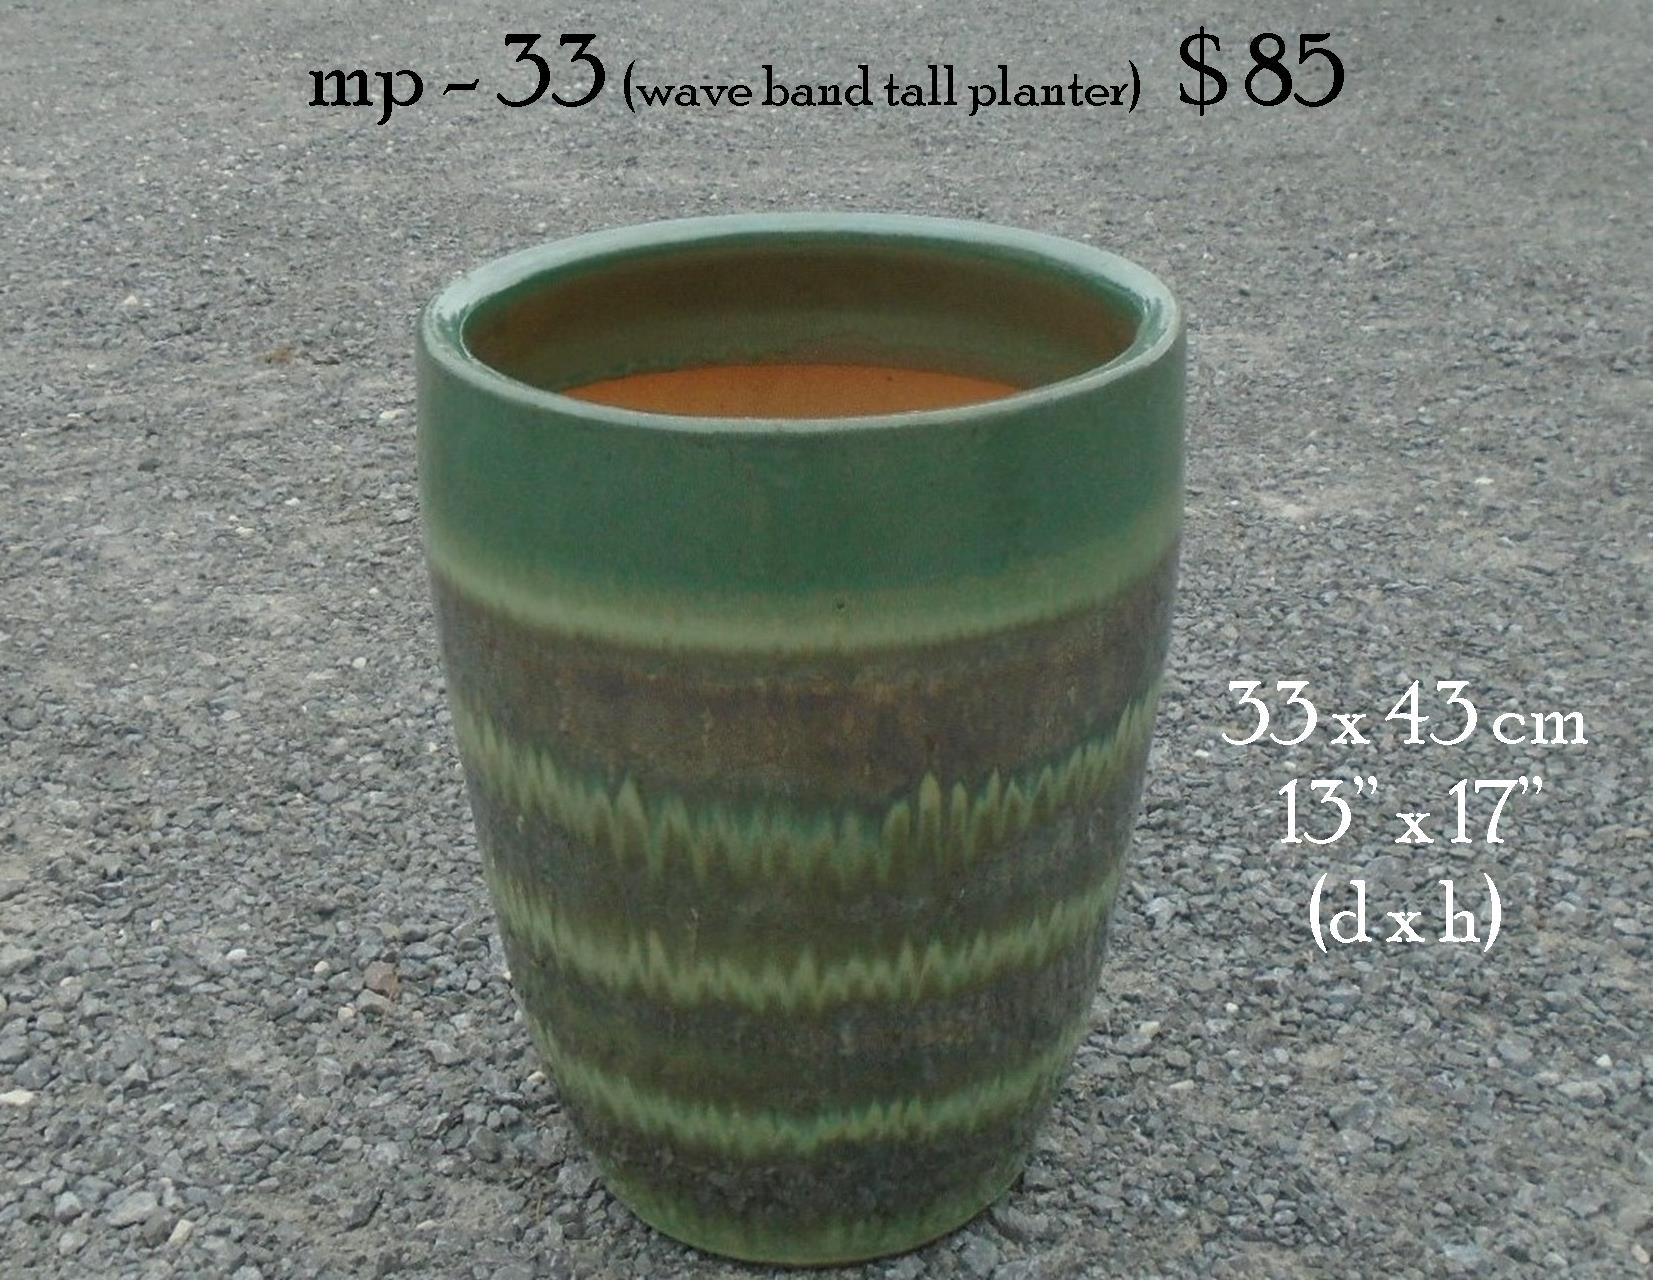 mp - 33 (wave band tall planter)